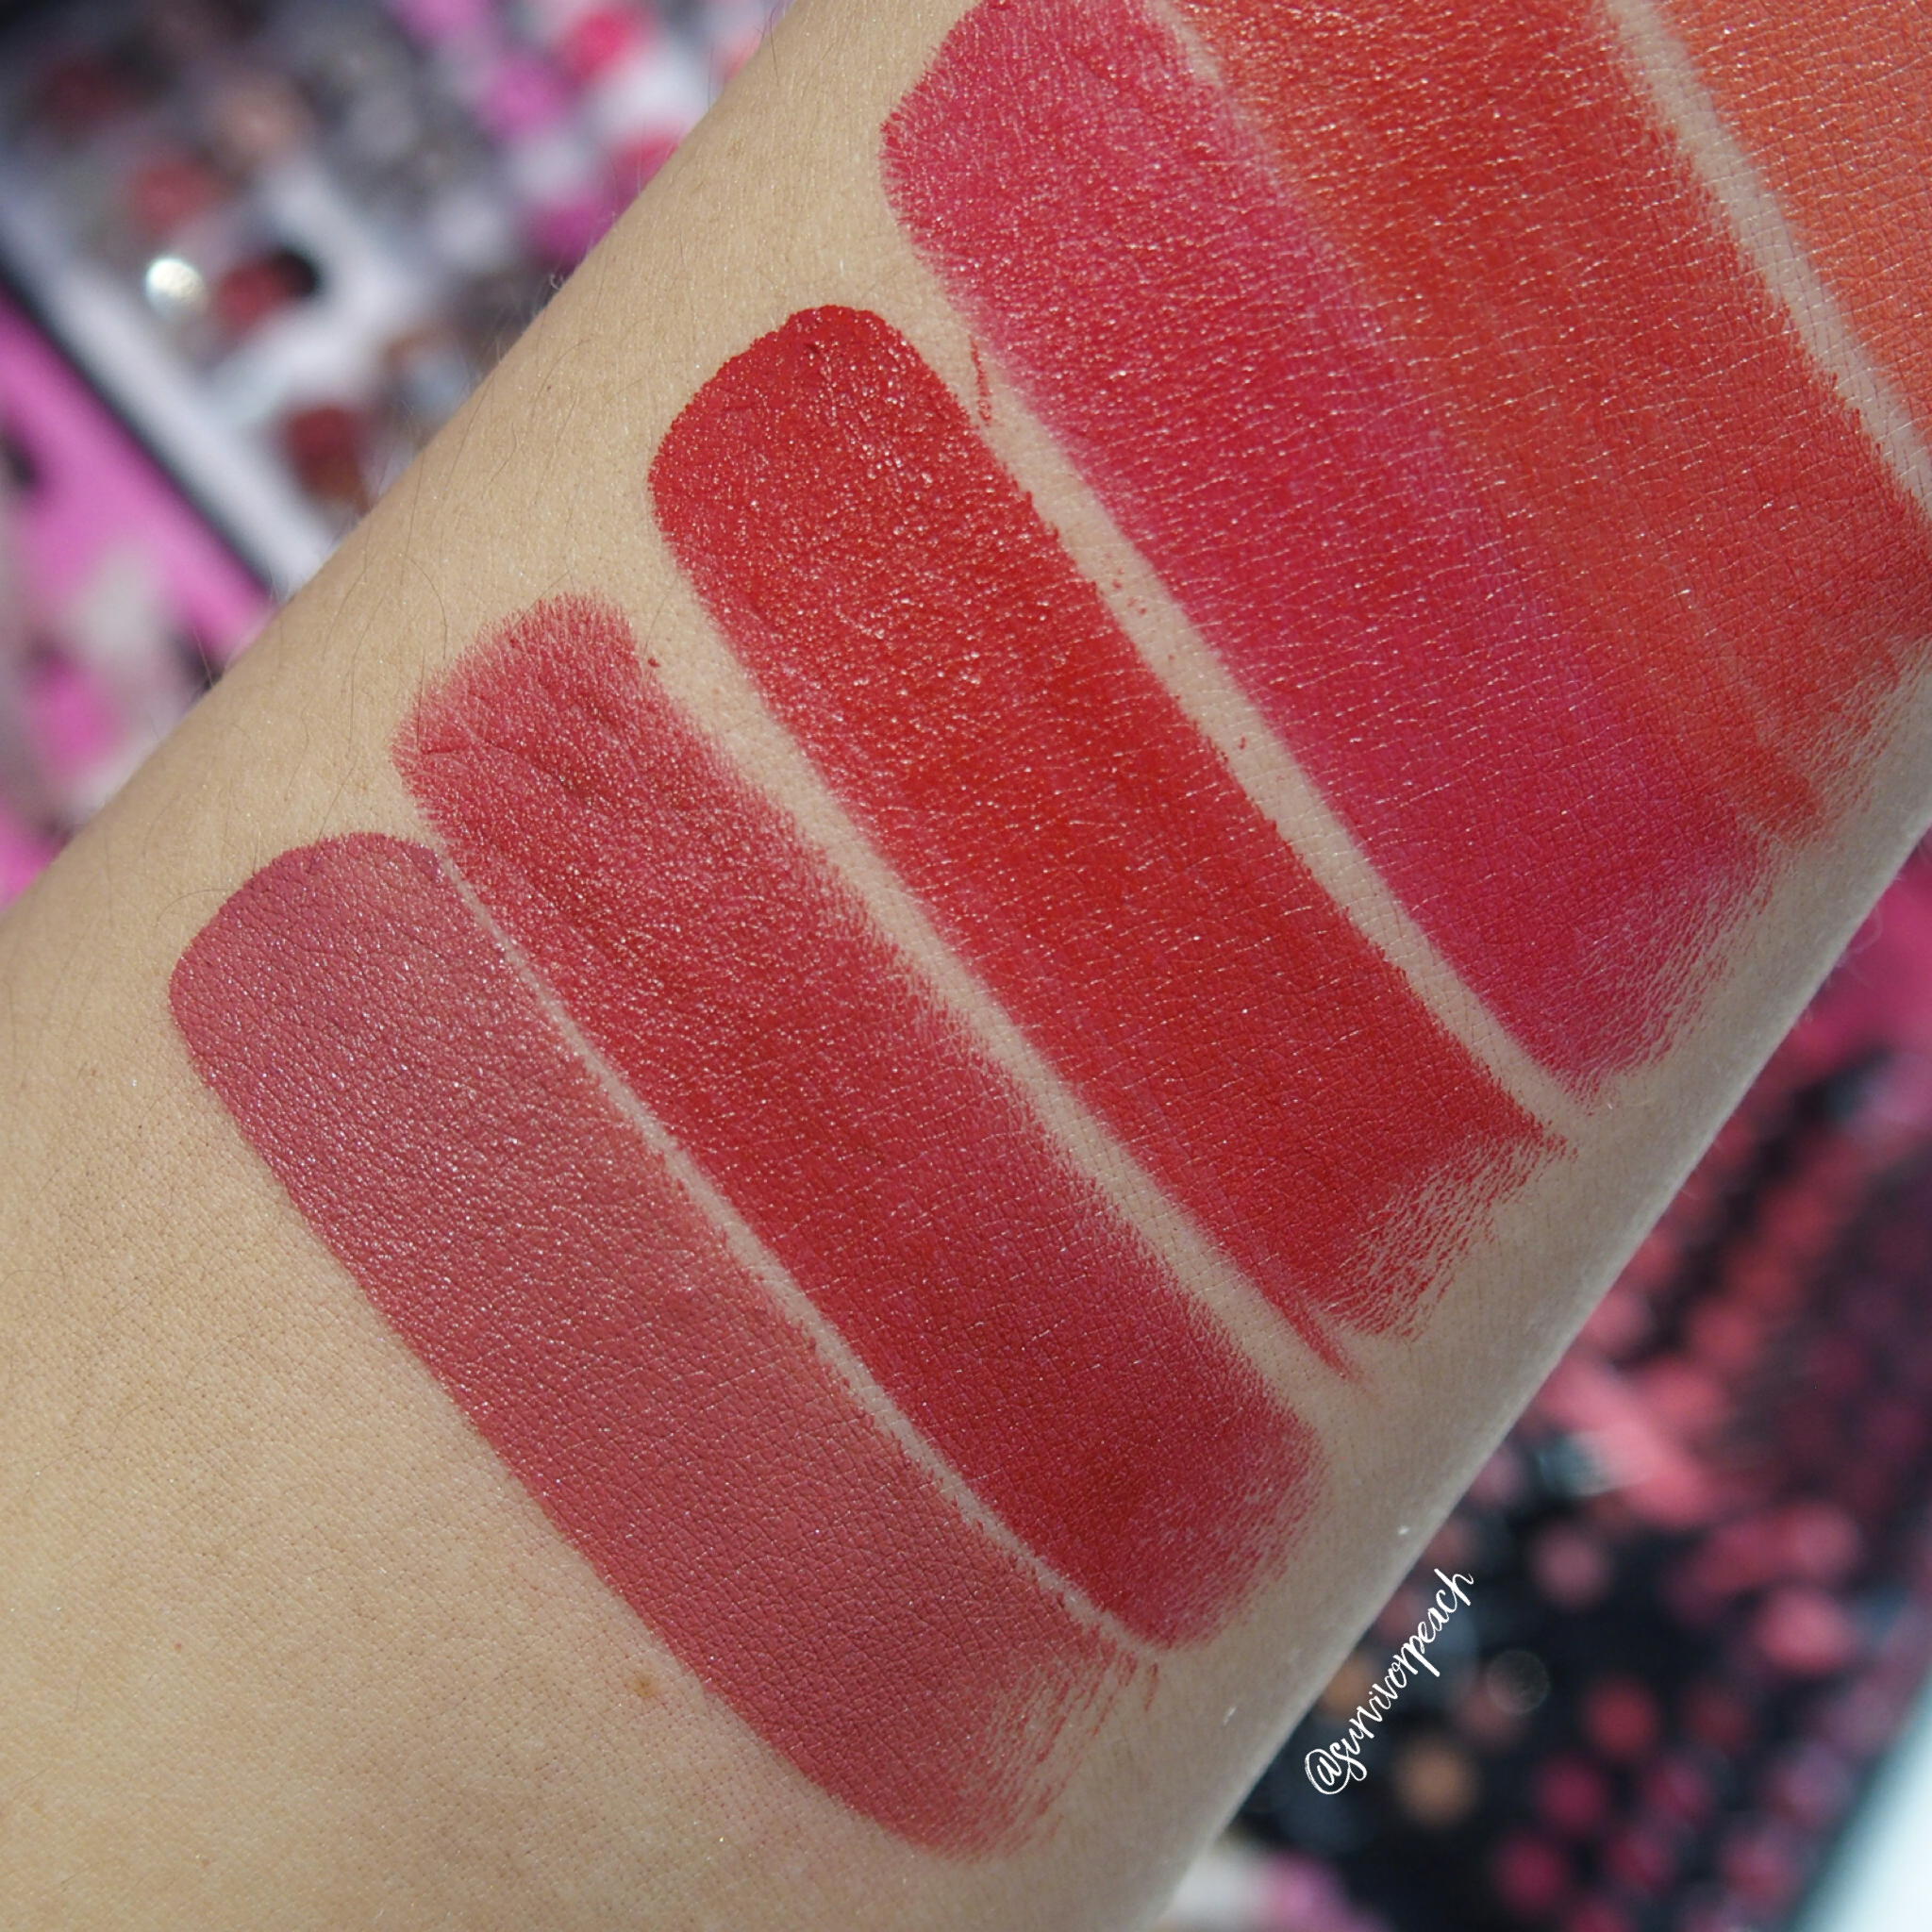 Sephora Collection Rouge Satin Lipstick swatches - S10 What's Up?, S11 Night Call, S12 On My Way, S13 Feeling Free, S18 Oh Oh!